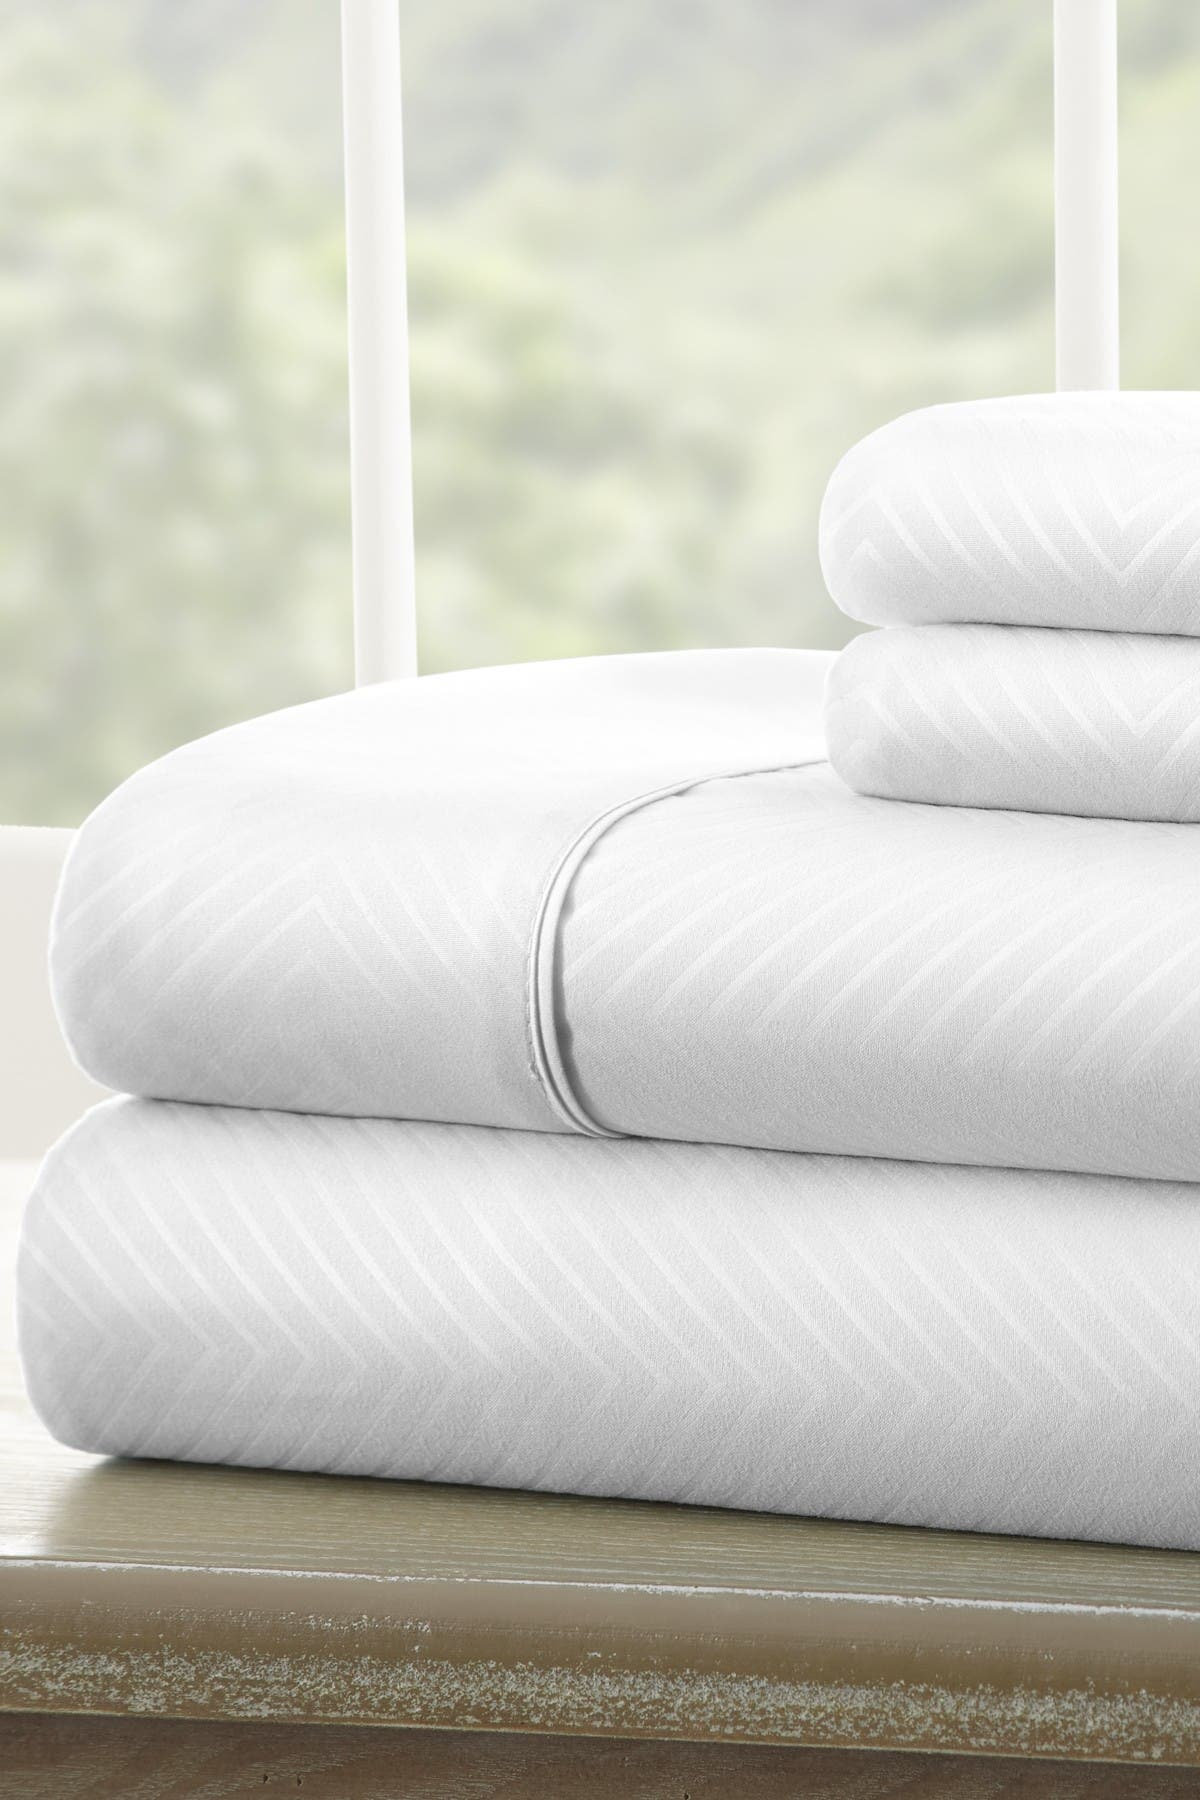 Image of IENJOY HOME King Hotel Collection Premium Ultra Soft 4-Piece Chevron Bed Sheet Set - White